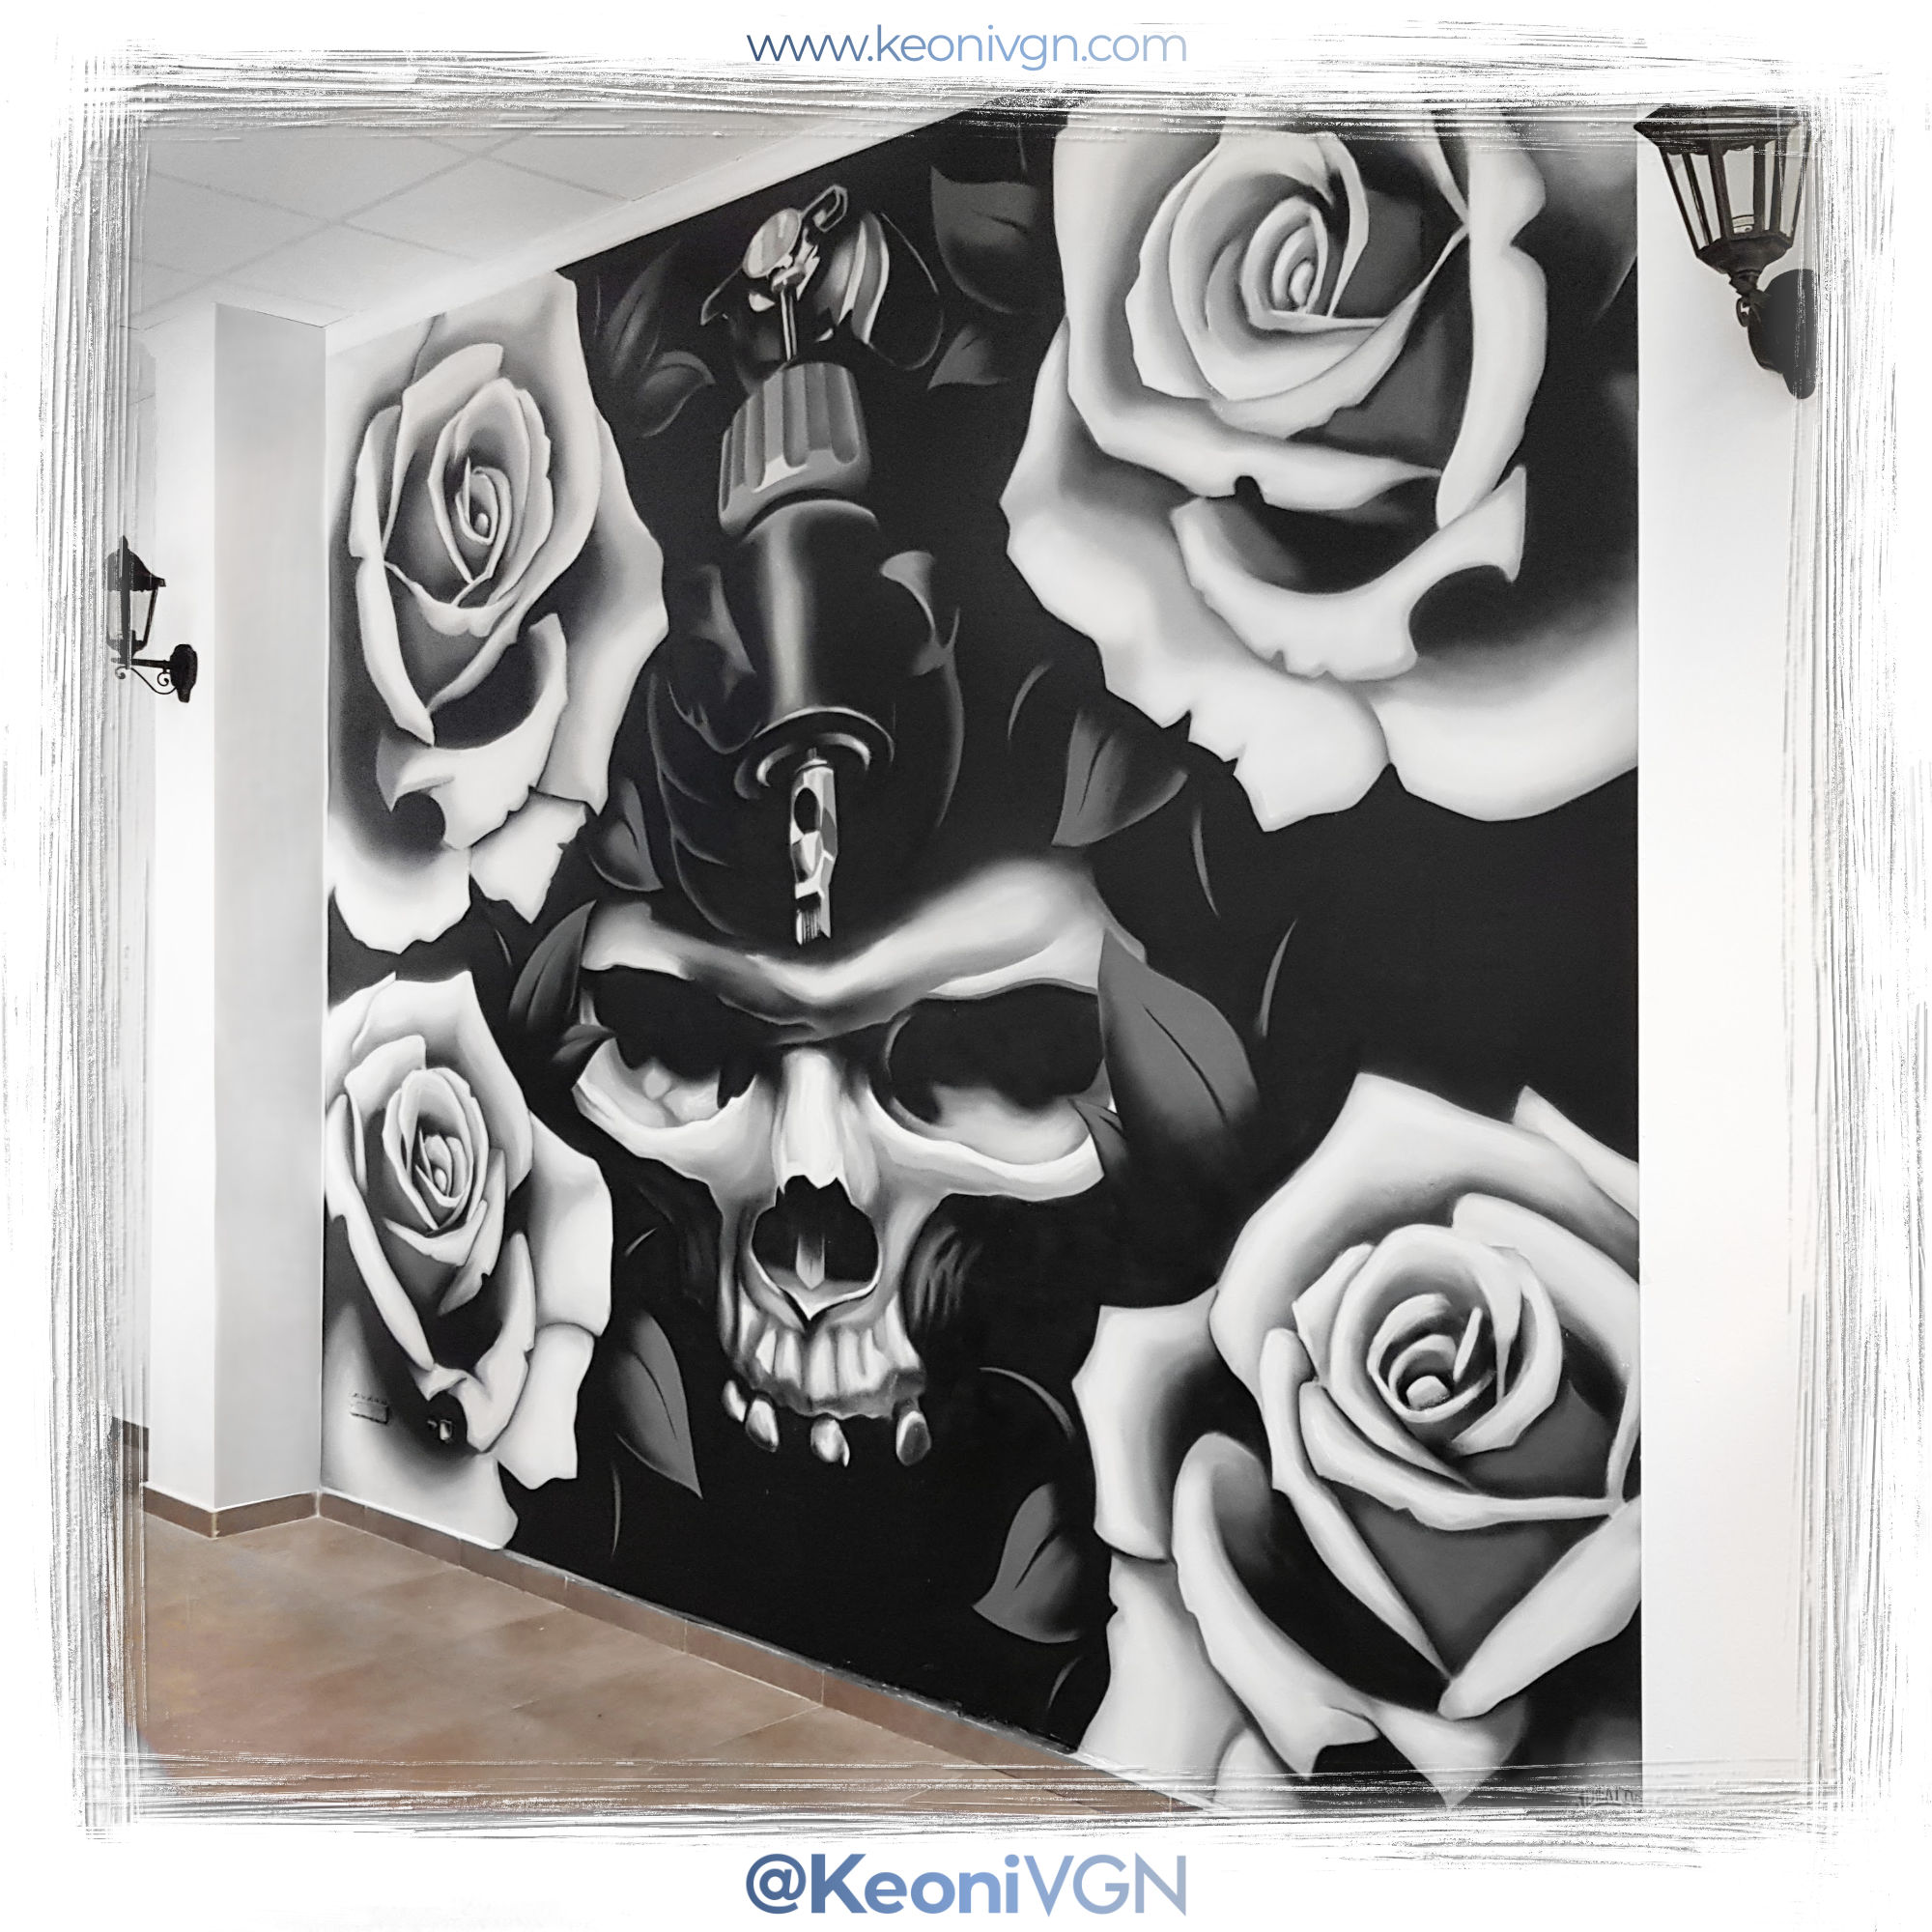 proyecto Skull & Roses